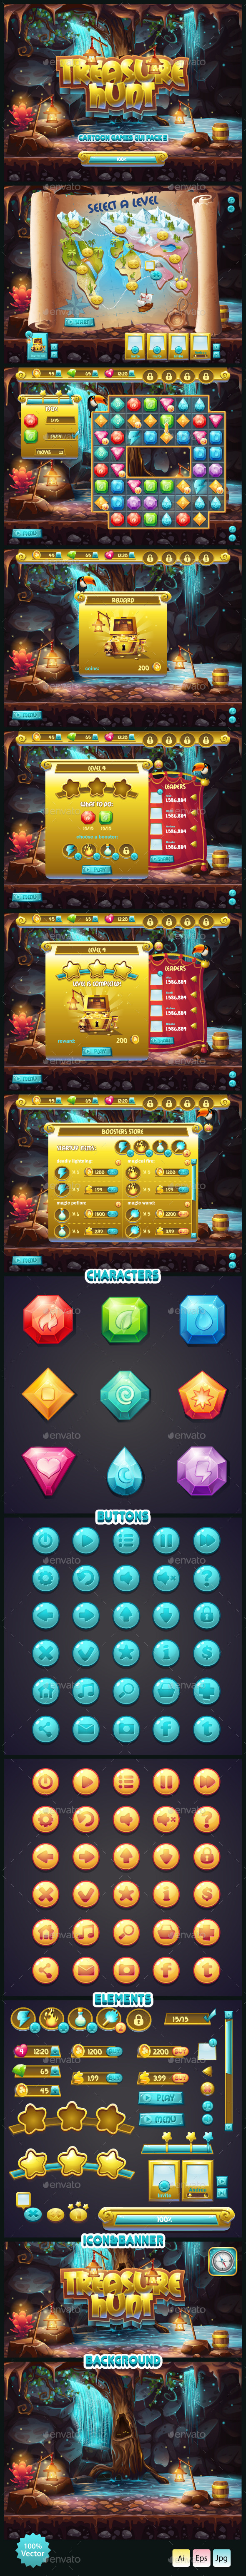 GUI Treasure Hunt - User Interfaces Game Assets